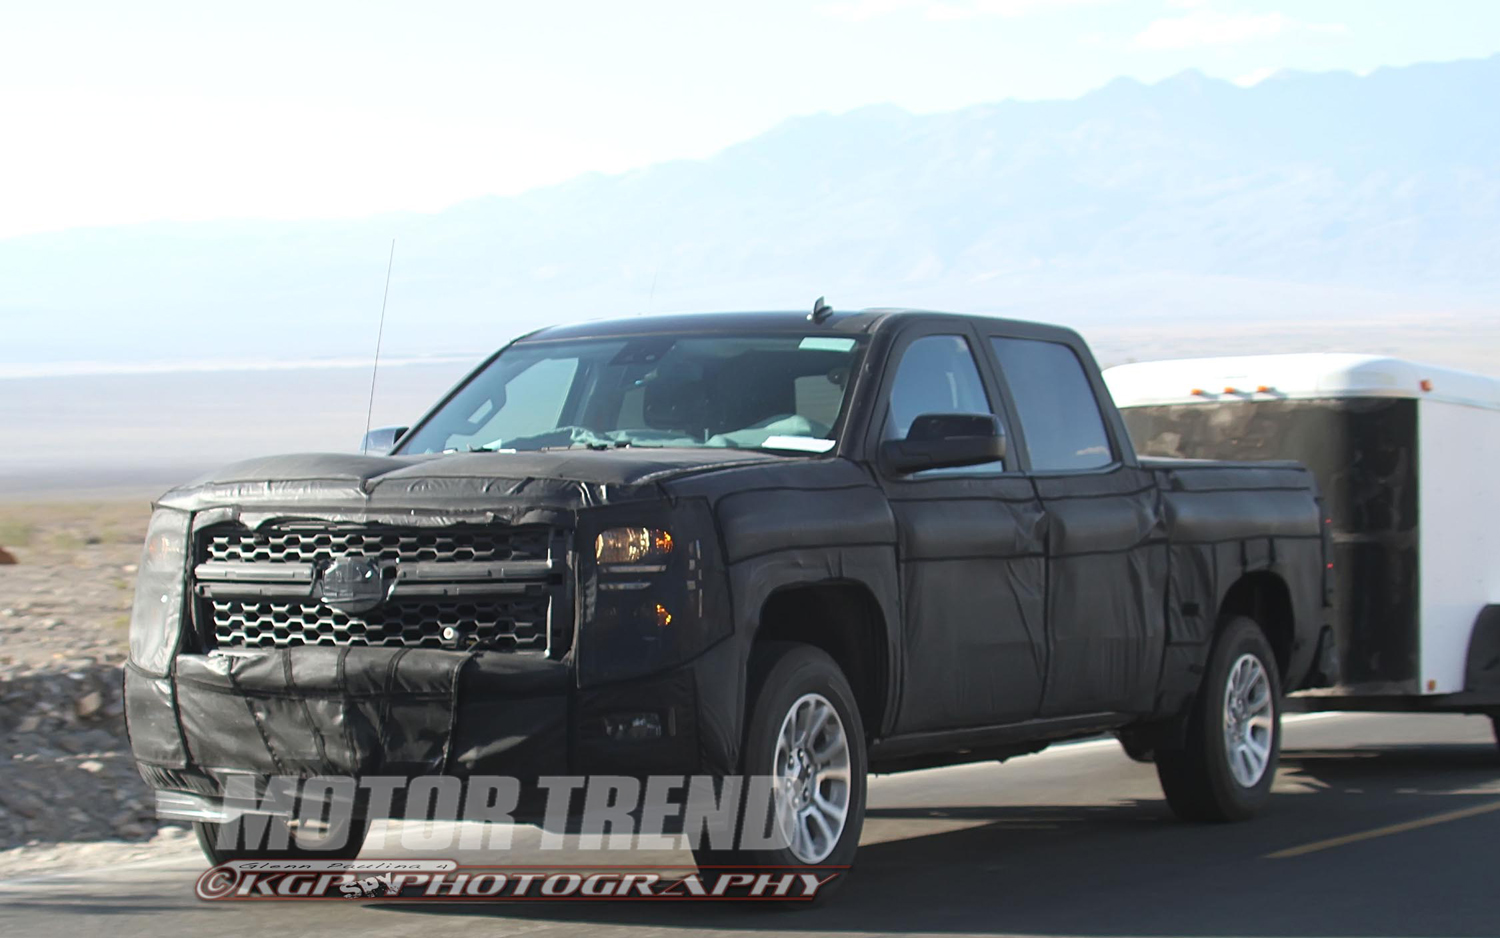 Gm Testing New Magnesium Forming Process Could Be Used On 2014 Alfa Romeo Wheels Silverado